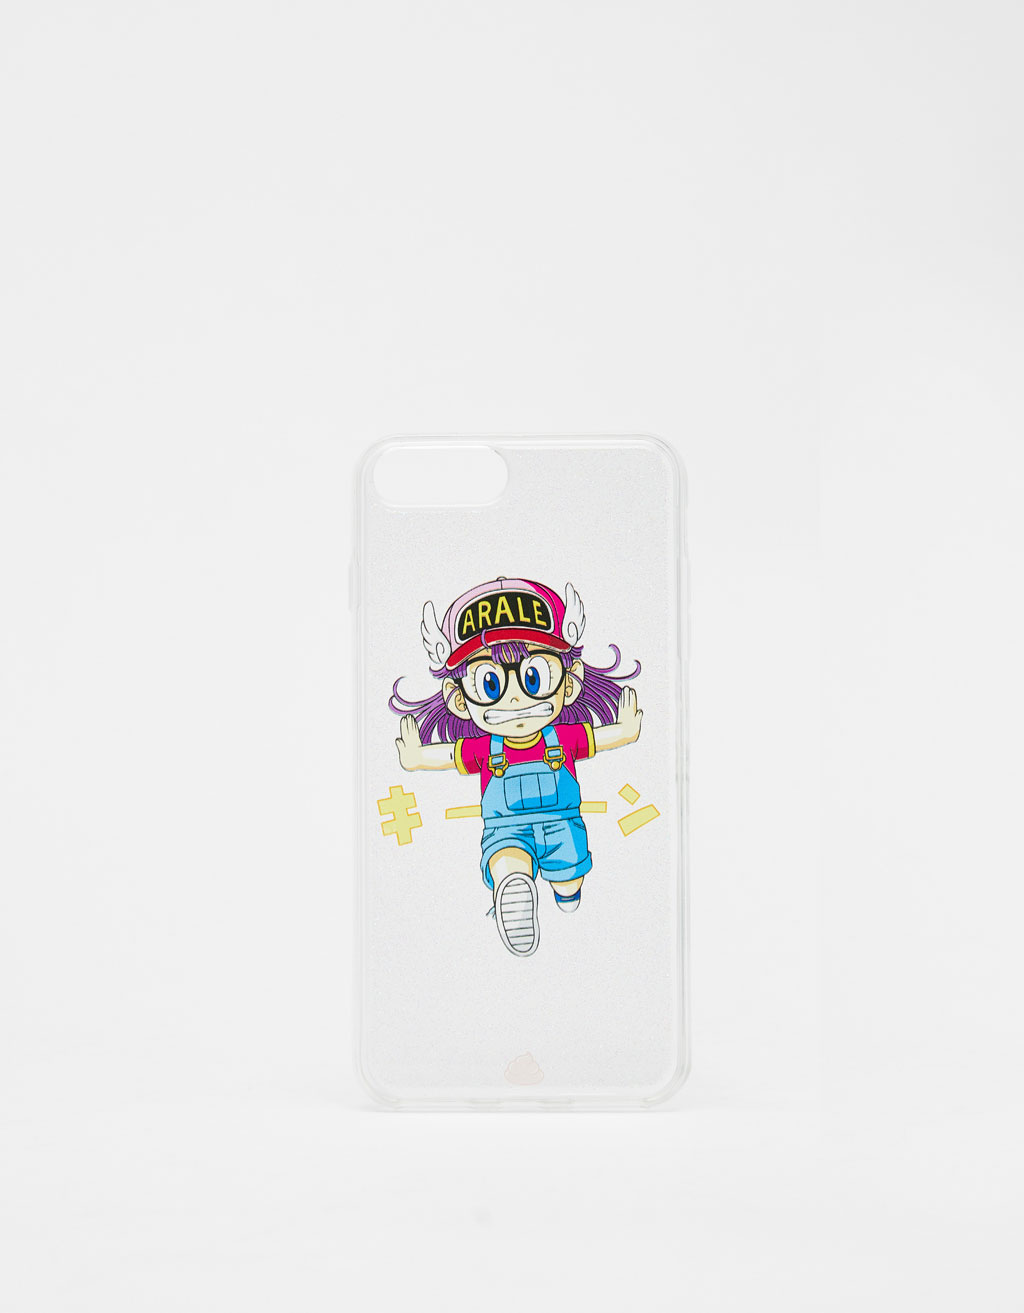 Carcassa transparent Arale iPhone 6 plus/7 plus/8 plus